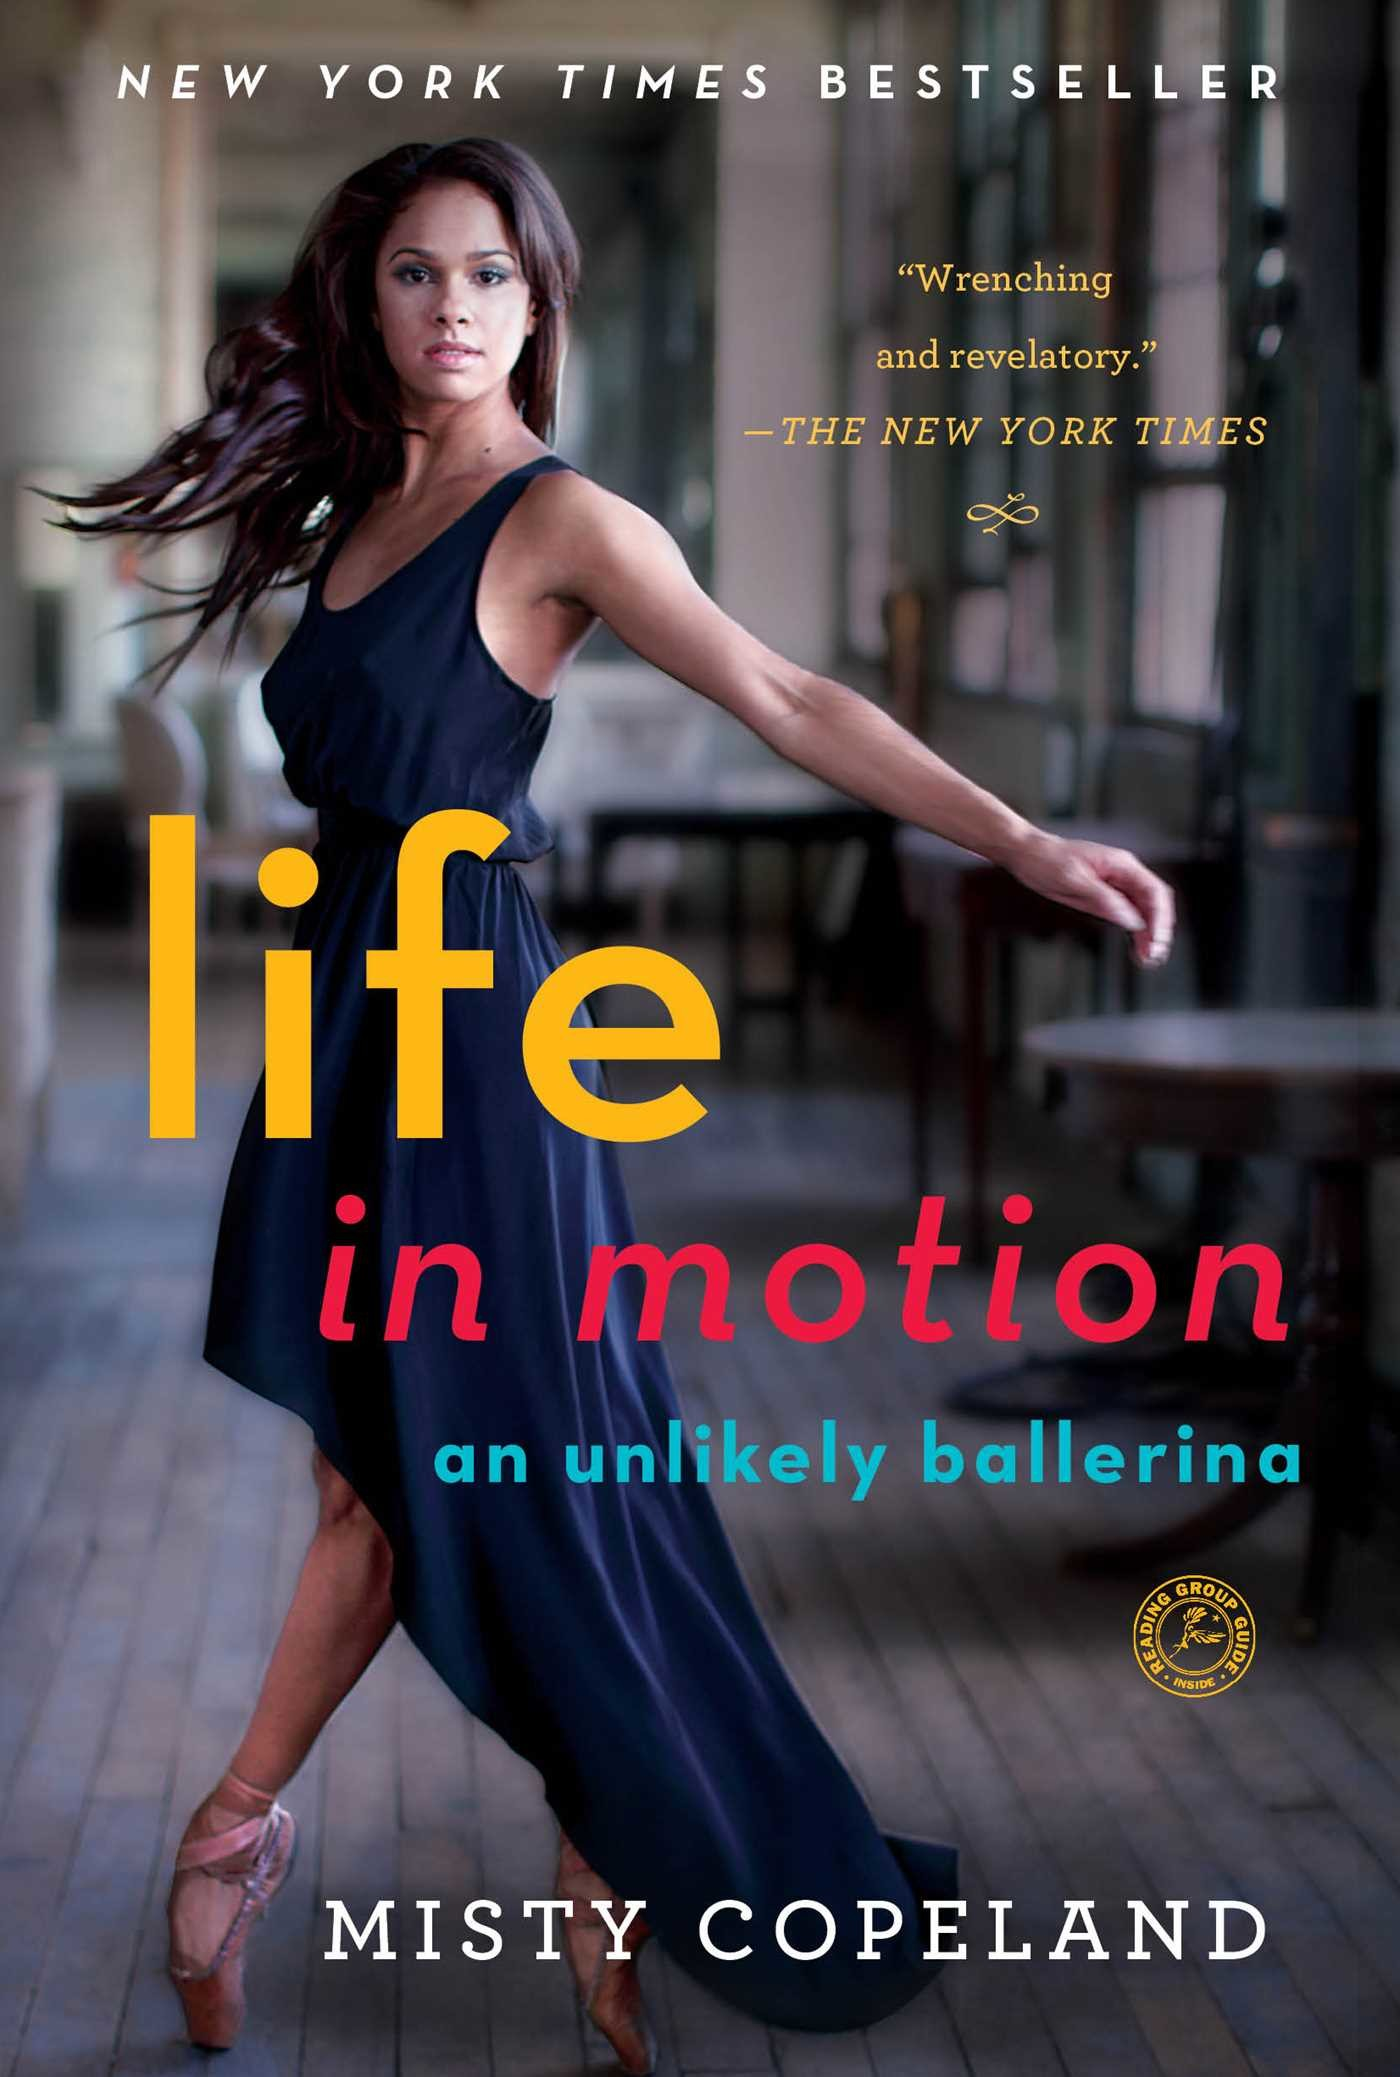 Life in motion 9781476737997.in17